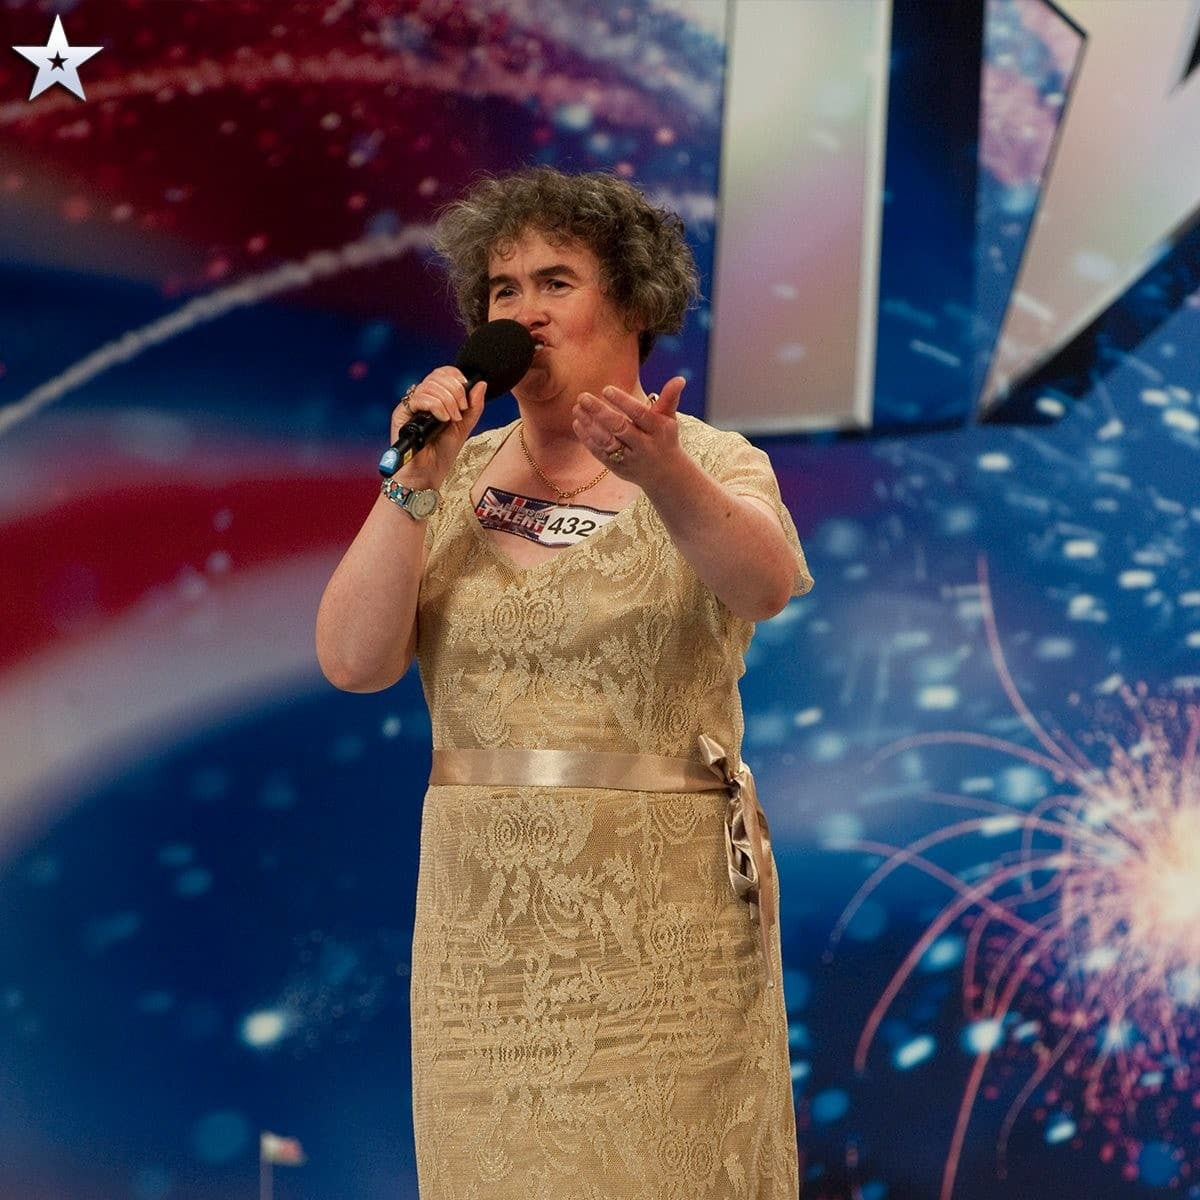 Britain's Got Talent - JD Social – Sharing & Networking